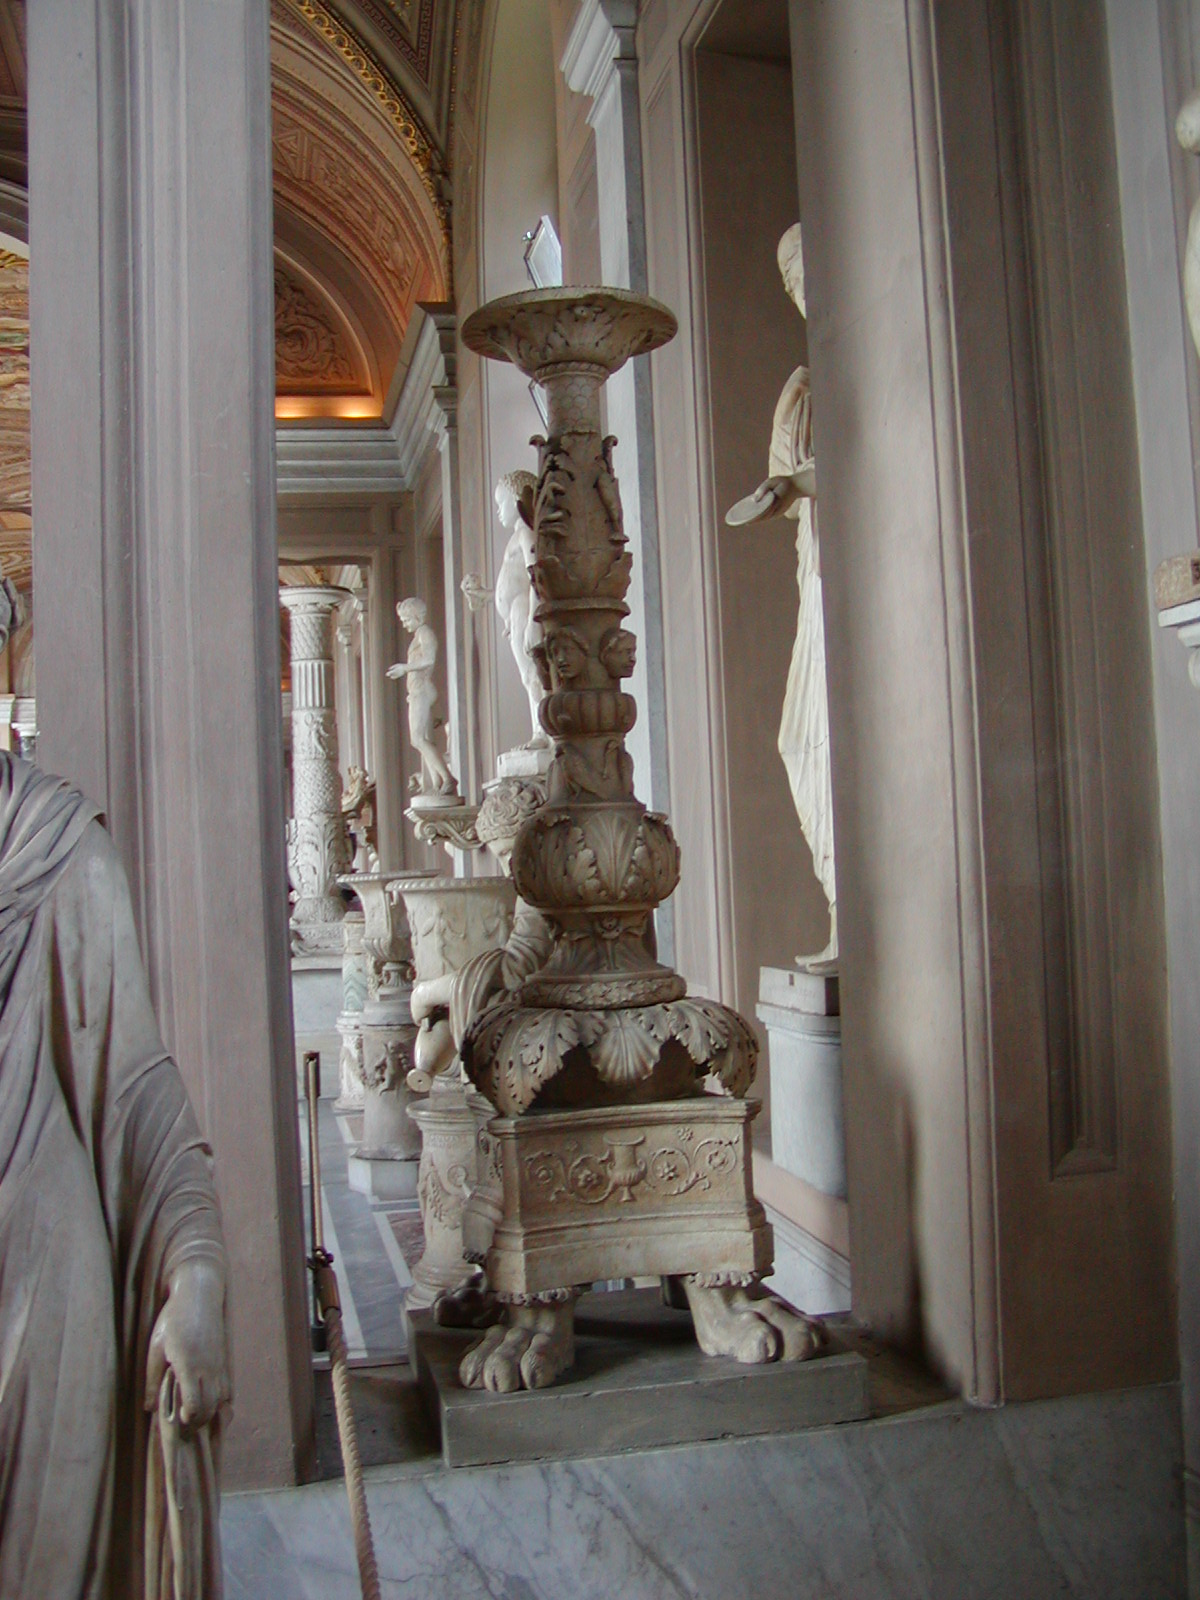 Gallery of the Candelabra - 2002-09-10-150706